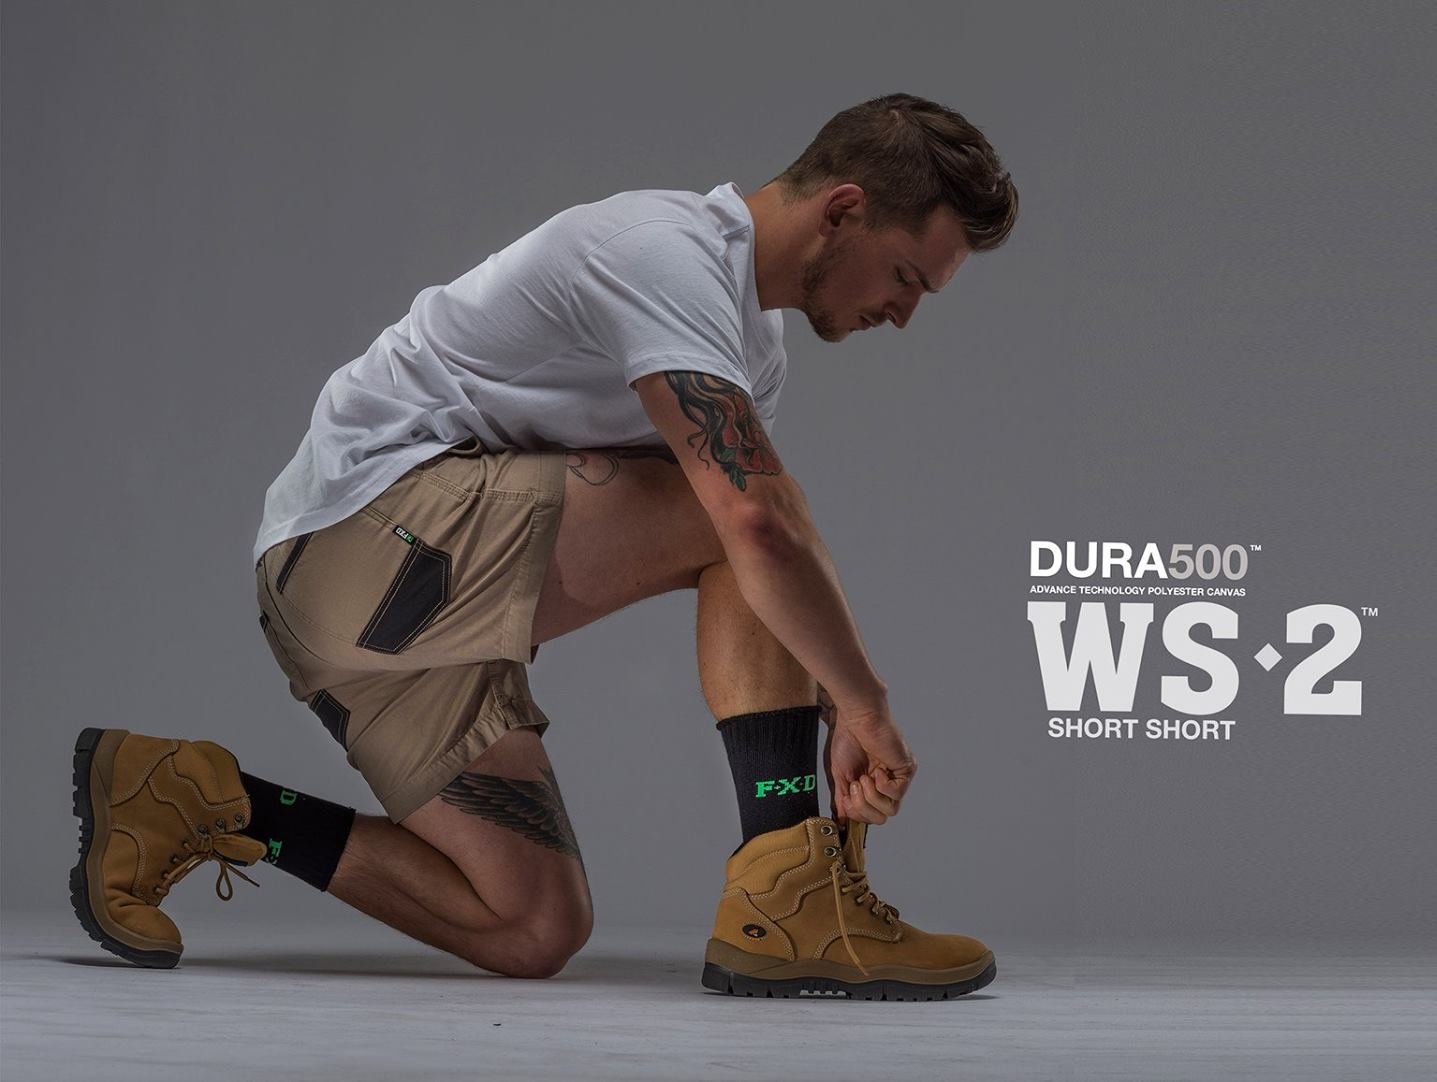 FXD WS-2 Work Short   Features:   - FX01136005 - Regular Fit - Sits On The Waist, Side Tab Ruler Pocket - 7.3oz 3x1 LHT Twill - DURA500 Reinforced Pockets - Stretch Back Yoke - Double Layer Internal Pocket Bags - YKK Nylon Zip Fly - Stress Points Bar-Tacks - Triple Needle Stitching - Certified 50+ UVA & UVB Protection